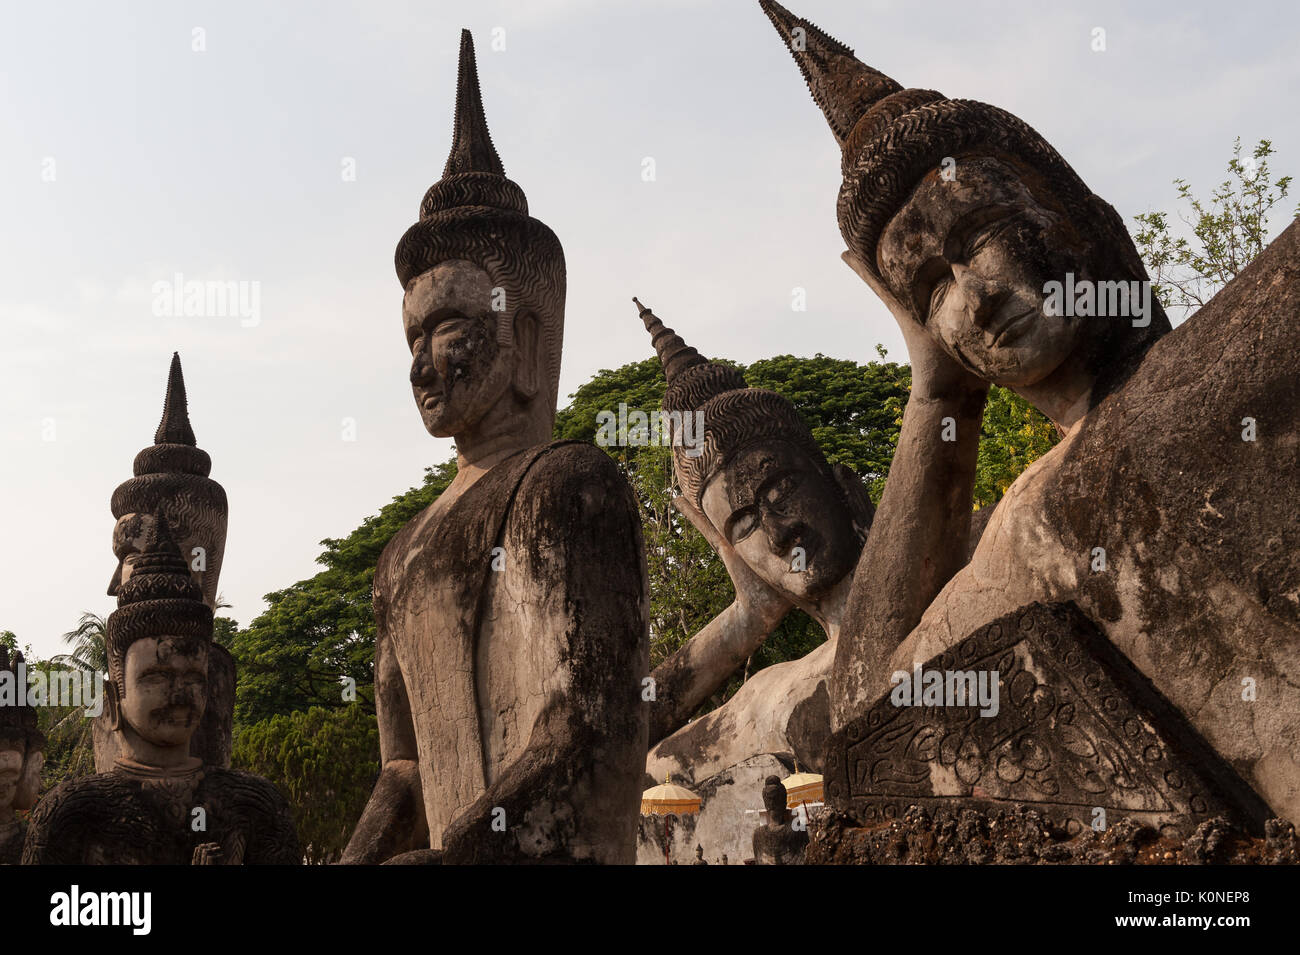 Numerous Buddha sculptures in Xieng Khuan, known as Buddha Park, outside Vientiane, Laos. - Stock Image